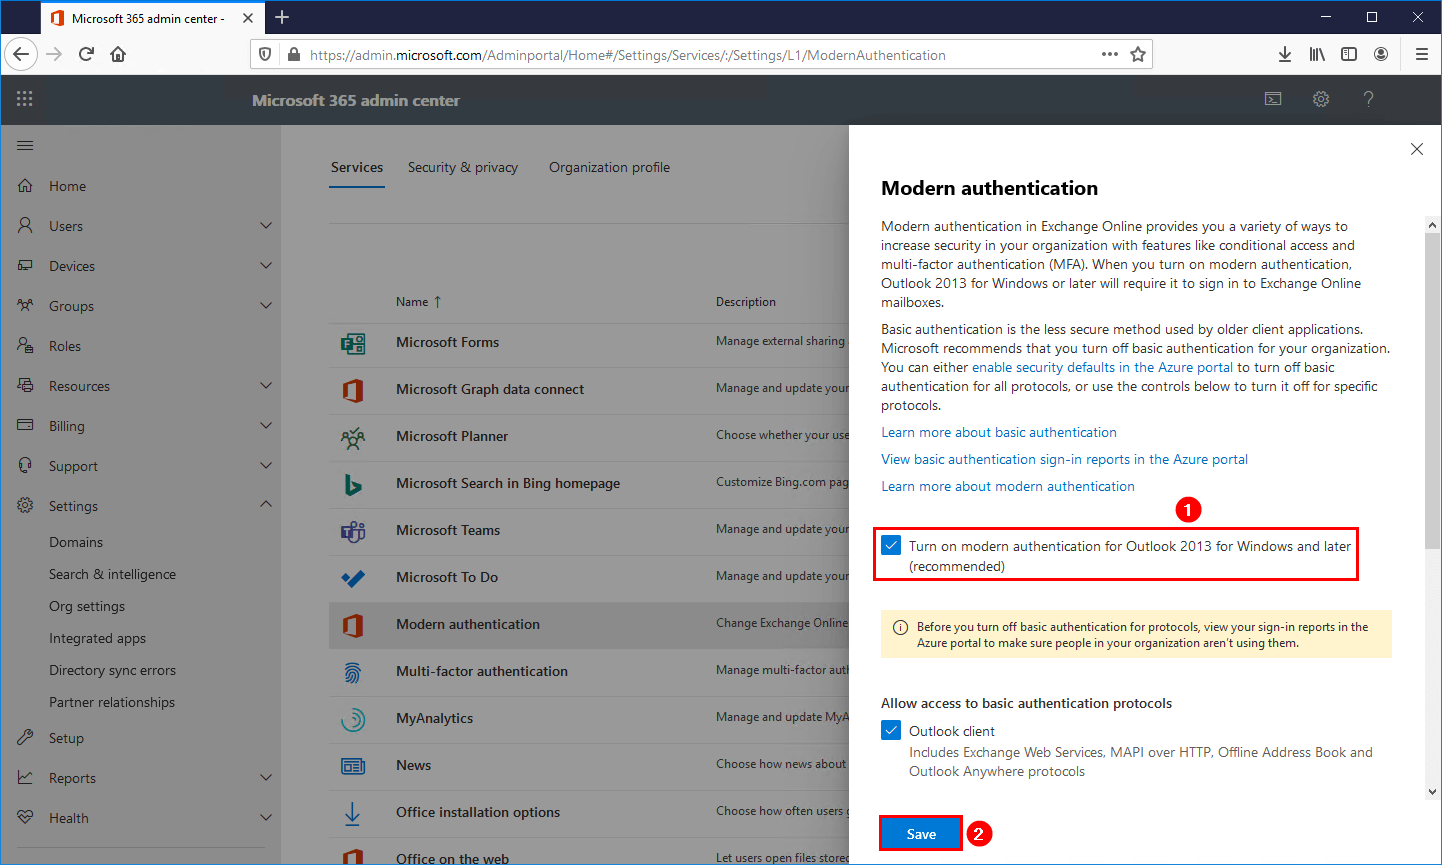 Outlook prompts for password after migration to Office 365 enable modern authentication